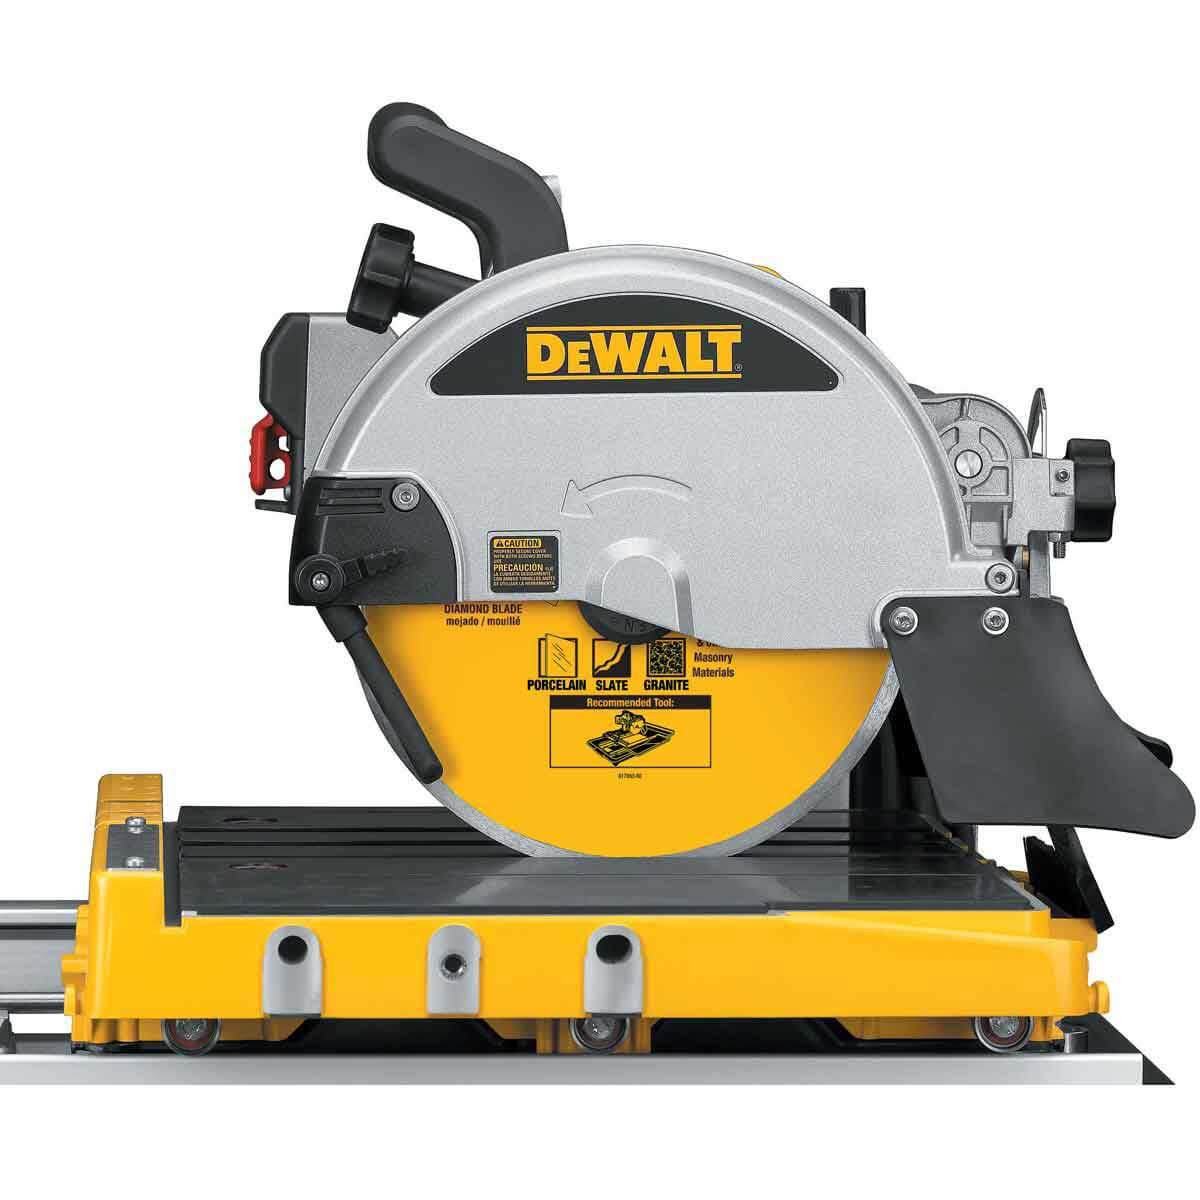 dewalt d24000 tile saw side view